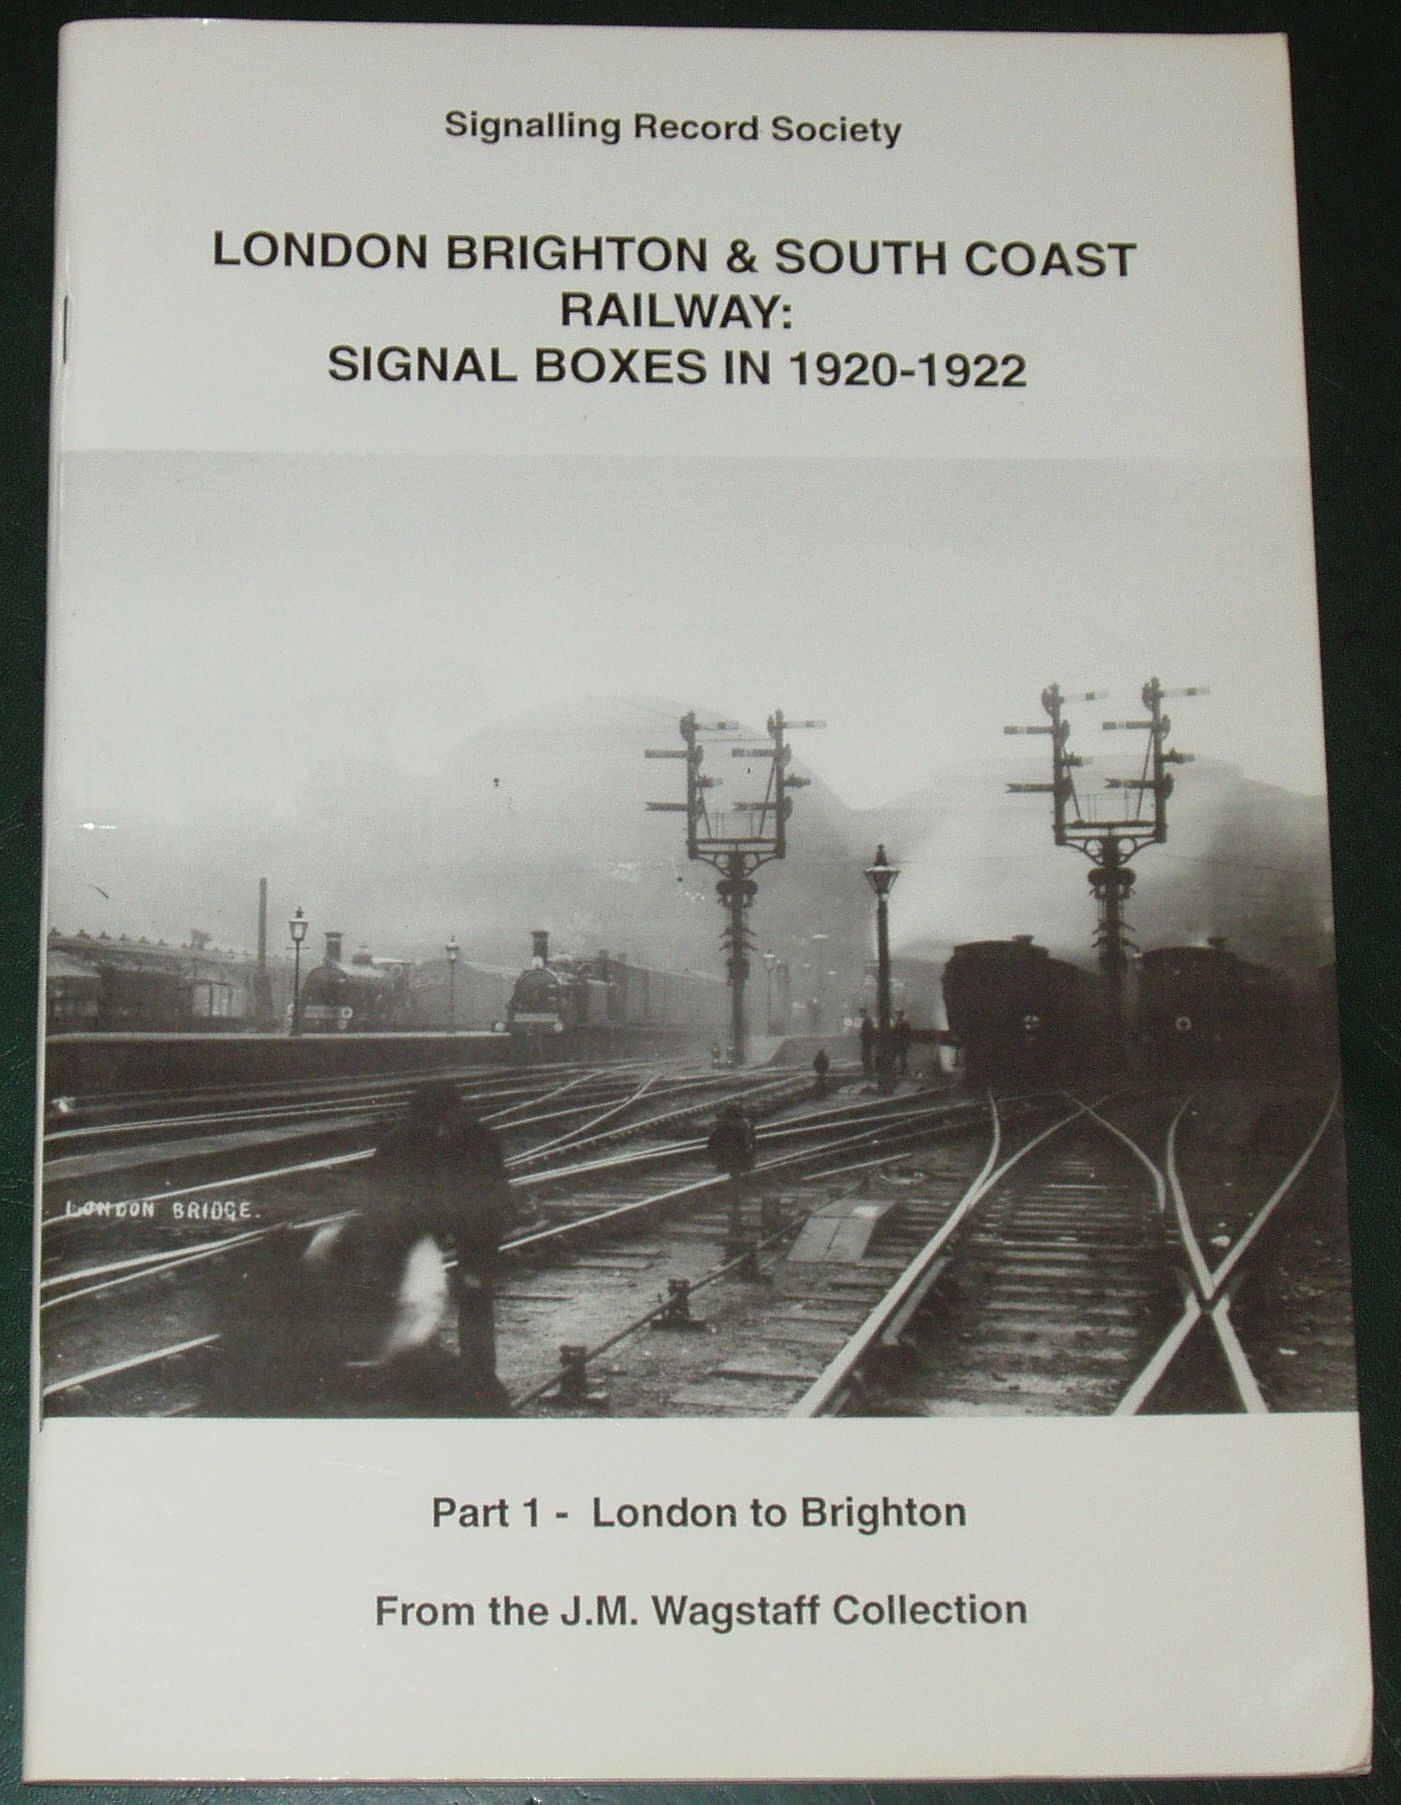 London Brighton and South Coast Railway: Signal Boxes in 1920-1922 (Part 1  London to Brighton)